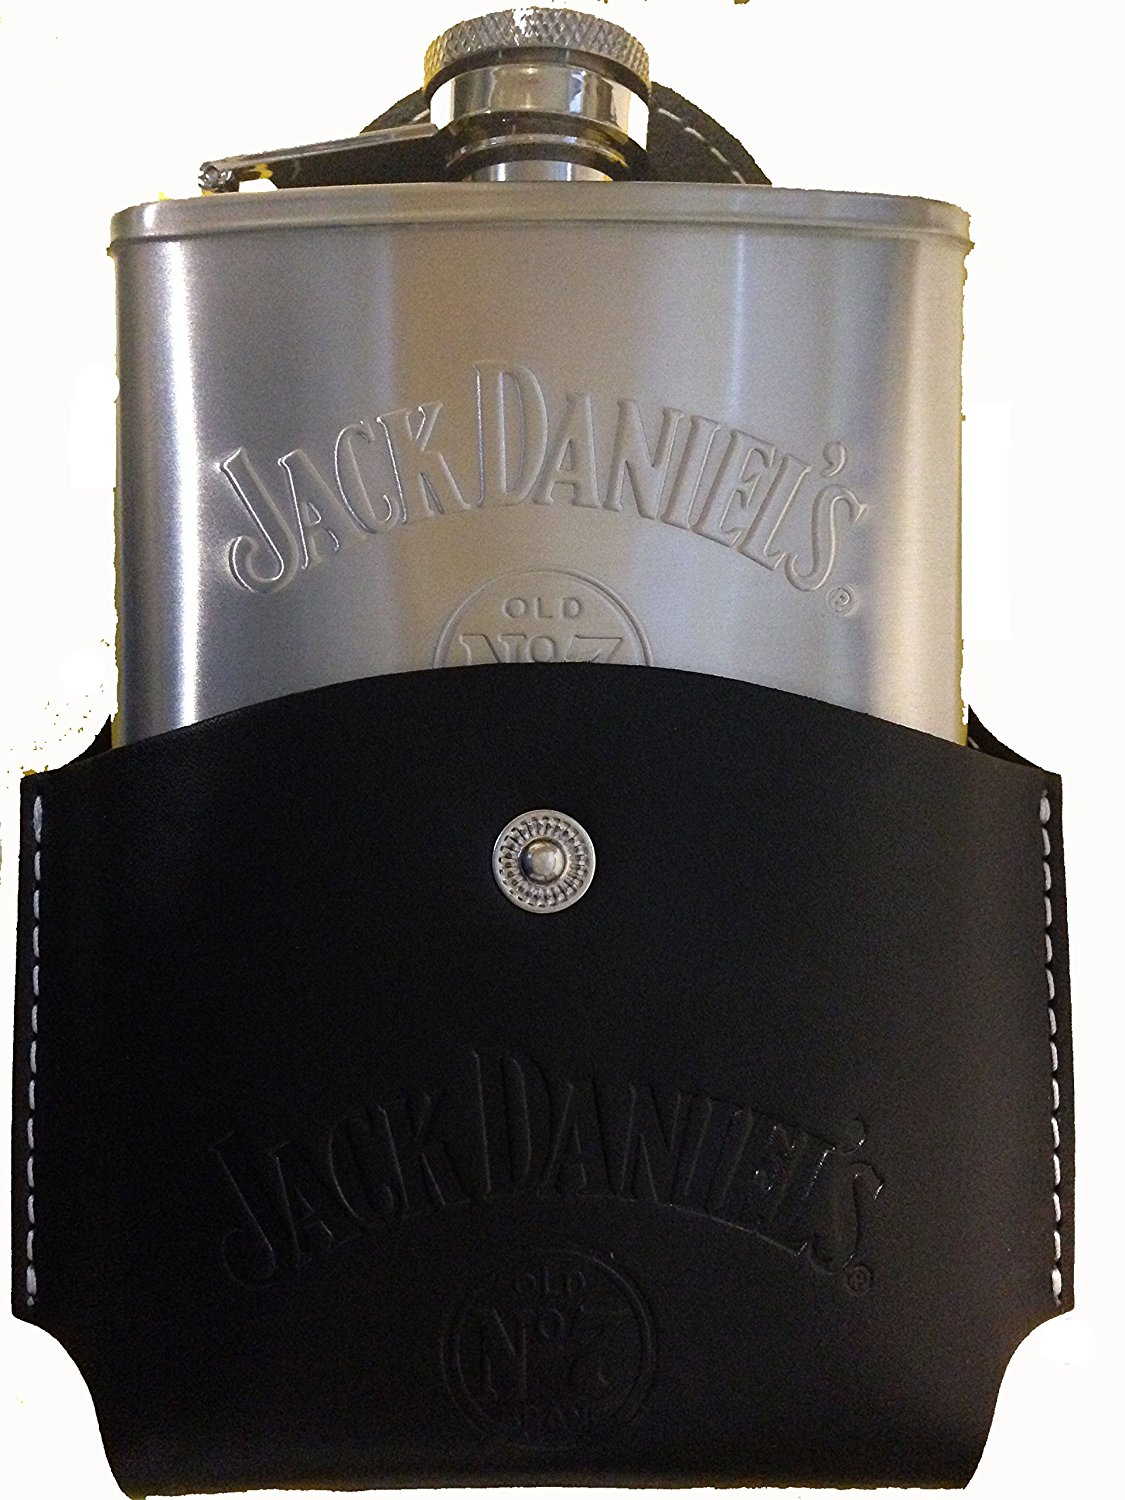 JACK DANIELS COVERED HIP FLASK BLACK